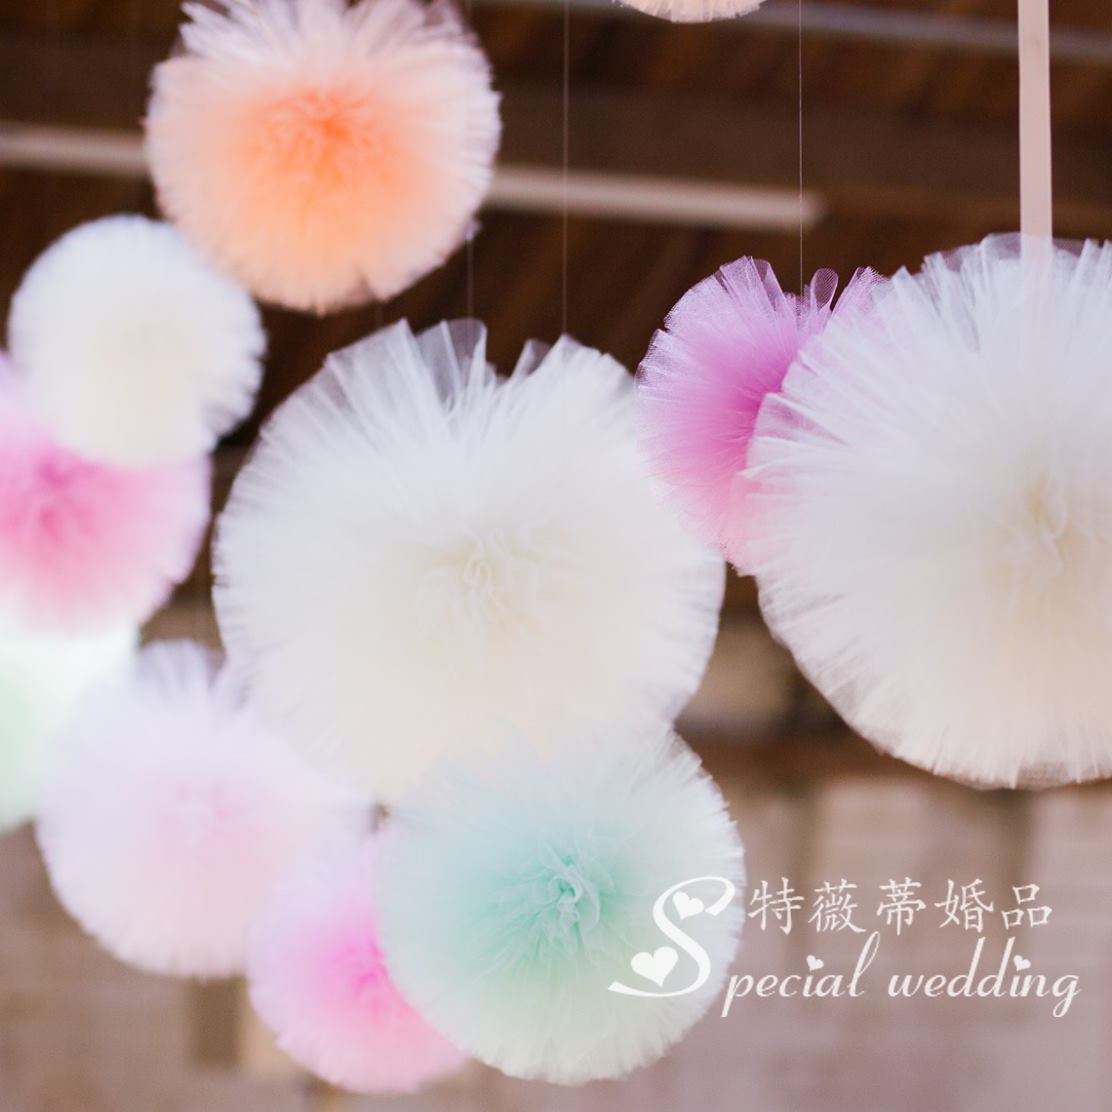 Usd 641 10cm wedding decoration yarn ball european style flower 10cm wedding decoration yarn ball european style flower ball 24 color optional photographed background marriage room decoration new year party junglespirit Images